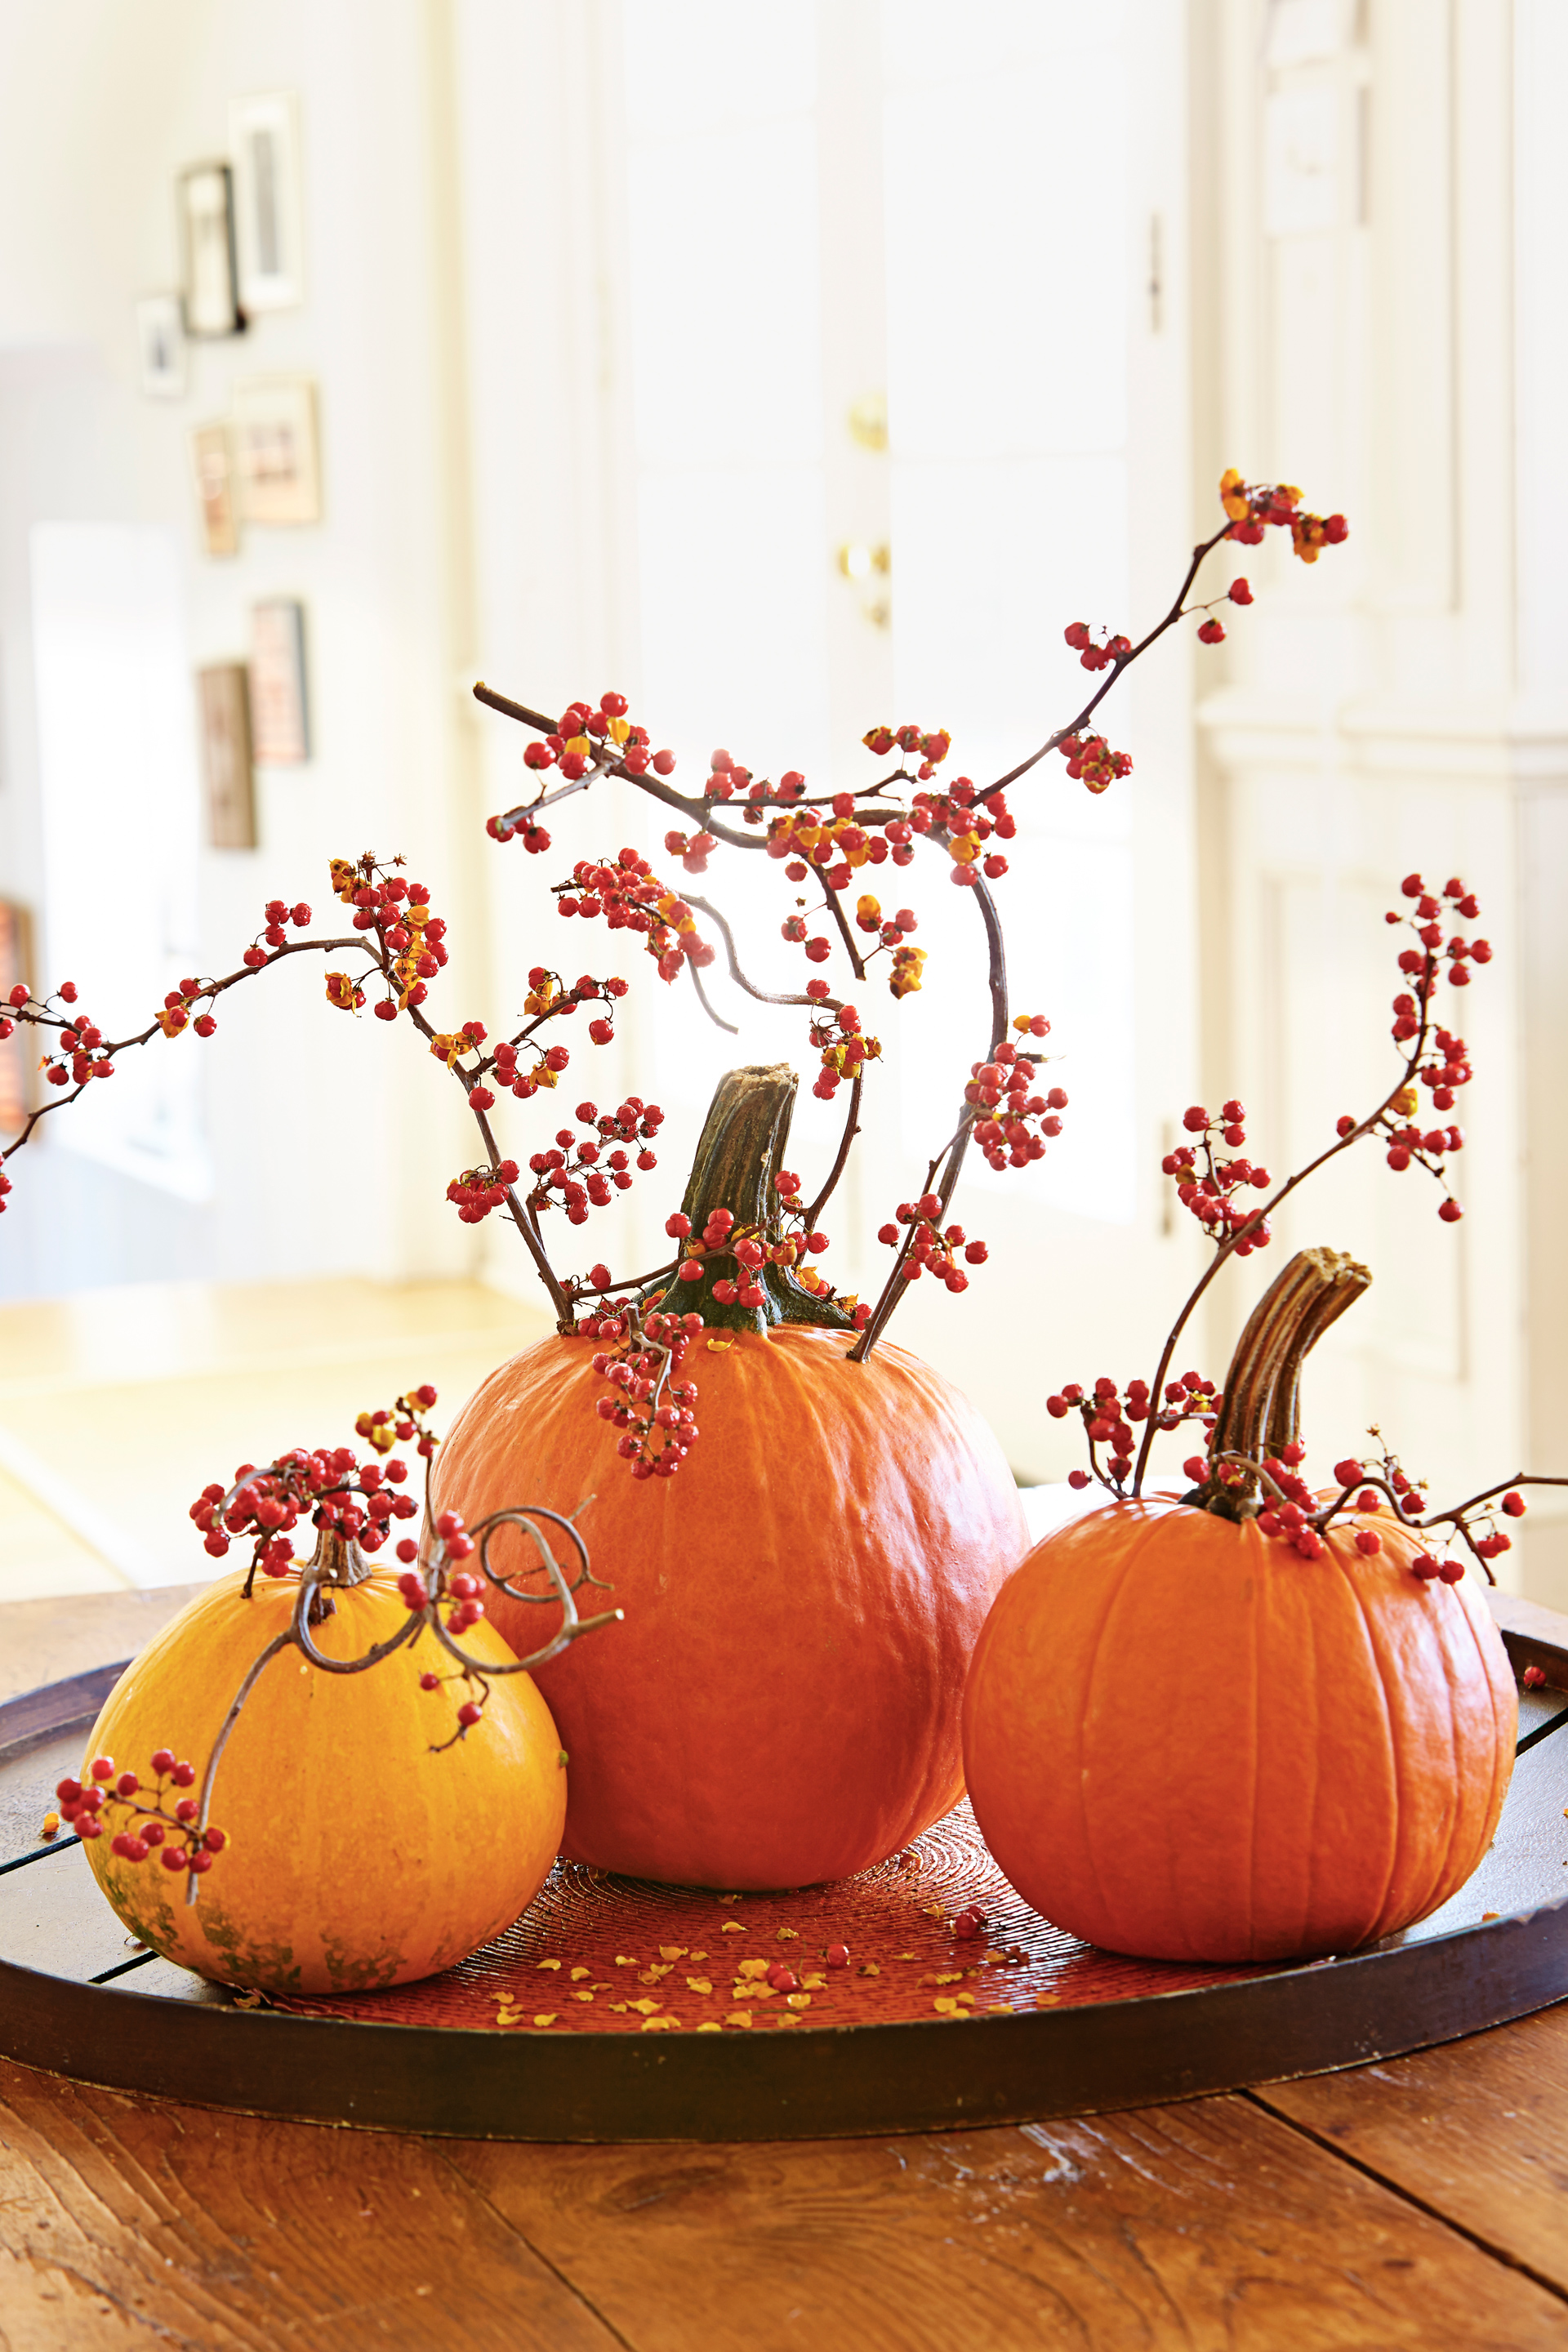 60 pumpkin designs we love for 2017 pumpkin decorating ideas - Decorated Halloween Pumpkins